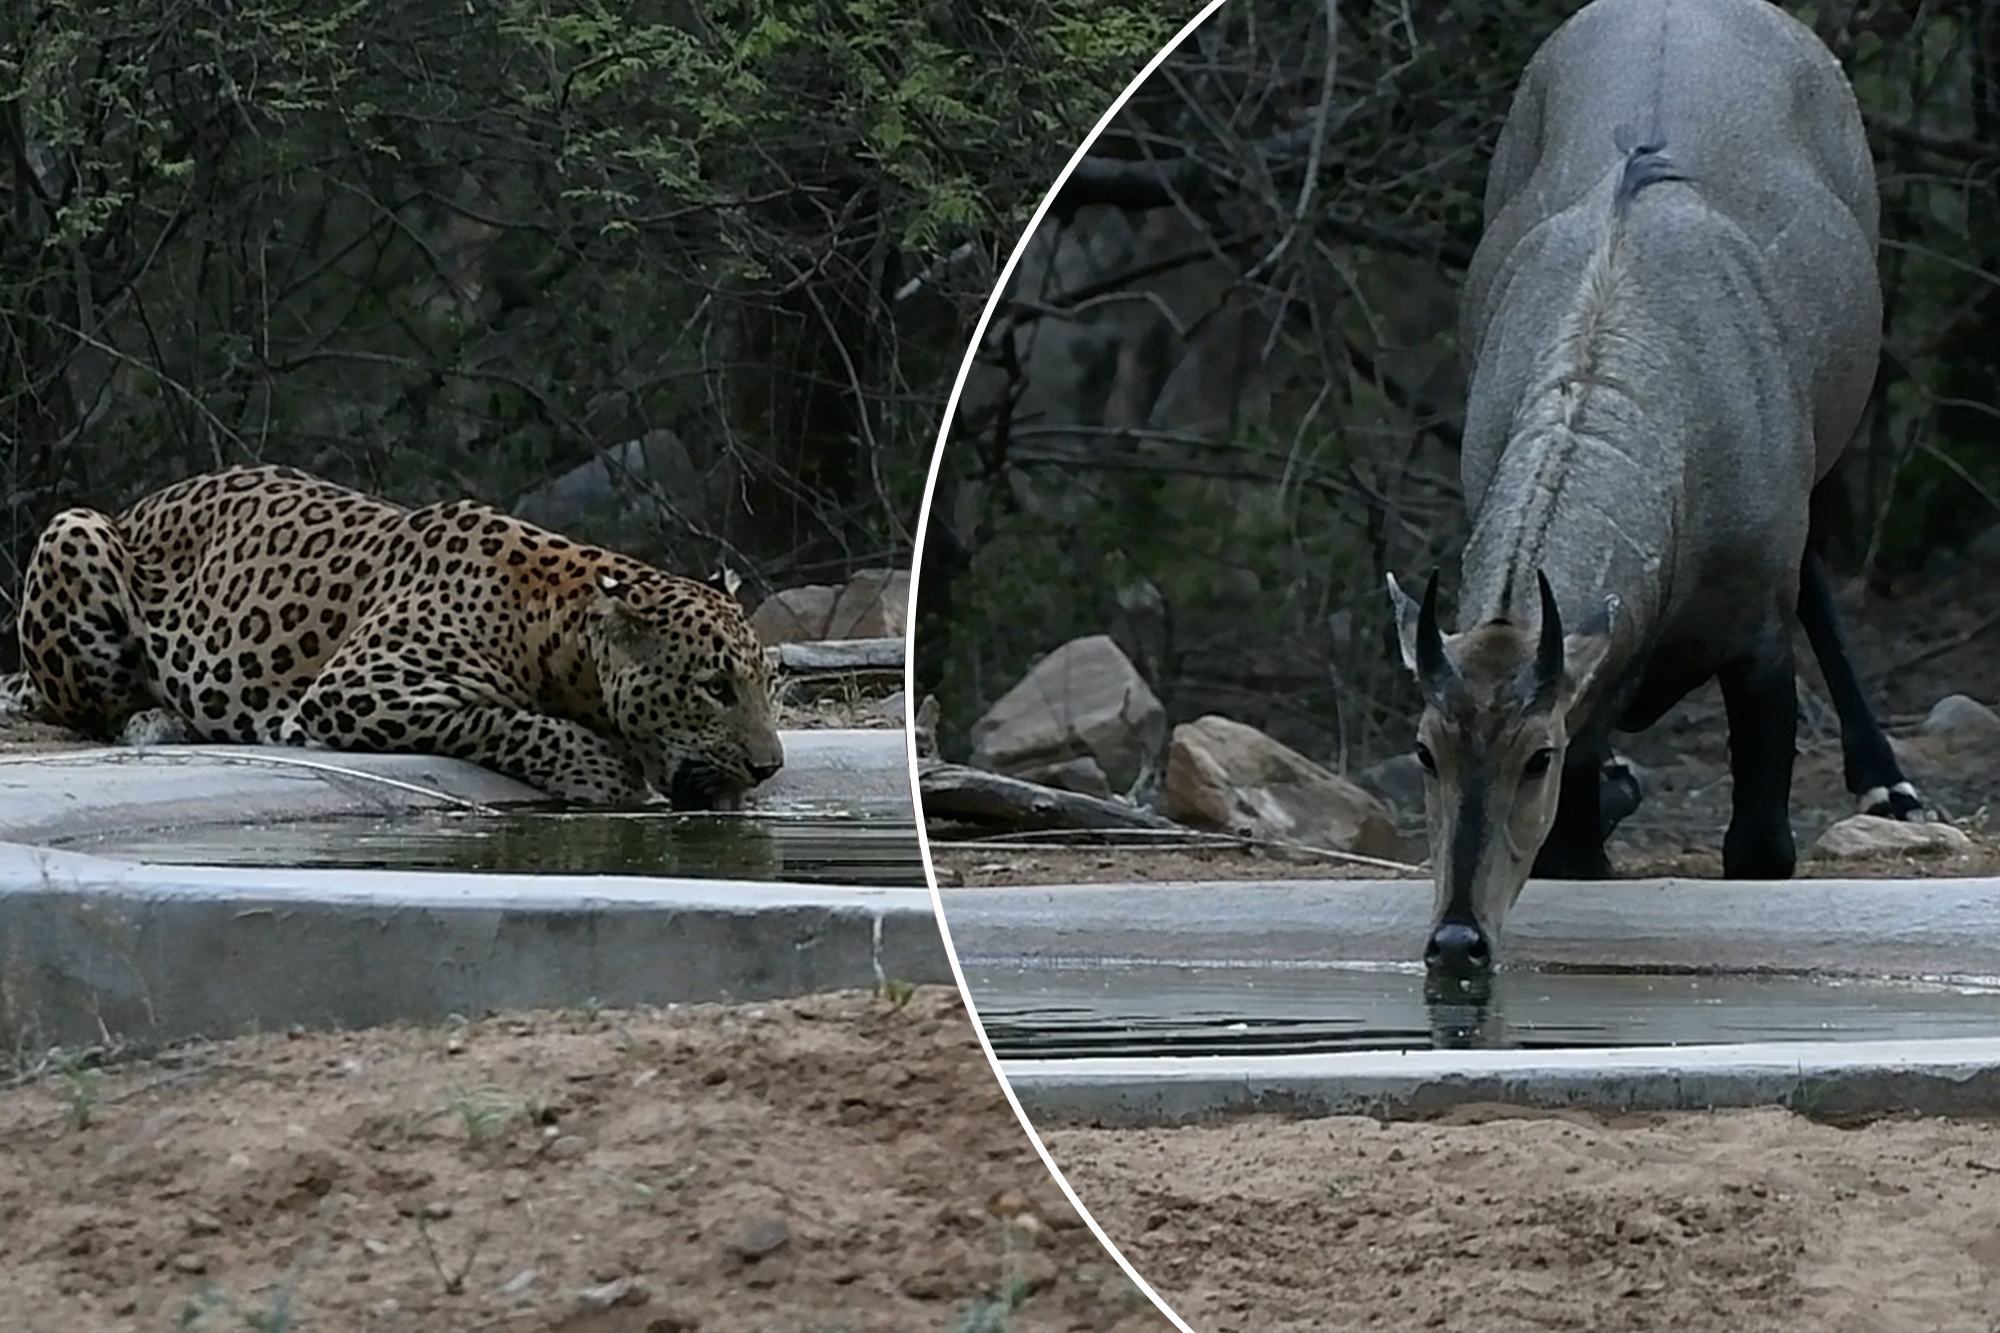 Thirsty leopard shares a drink with its prey in this rare moment